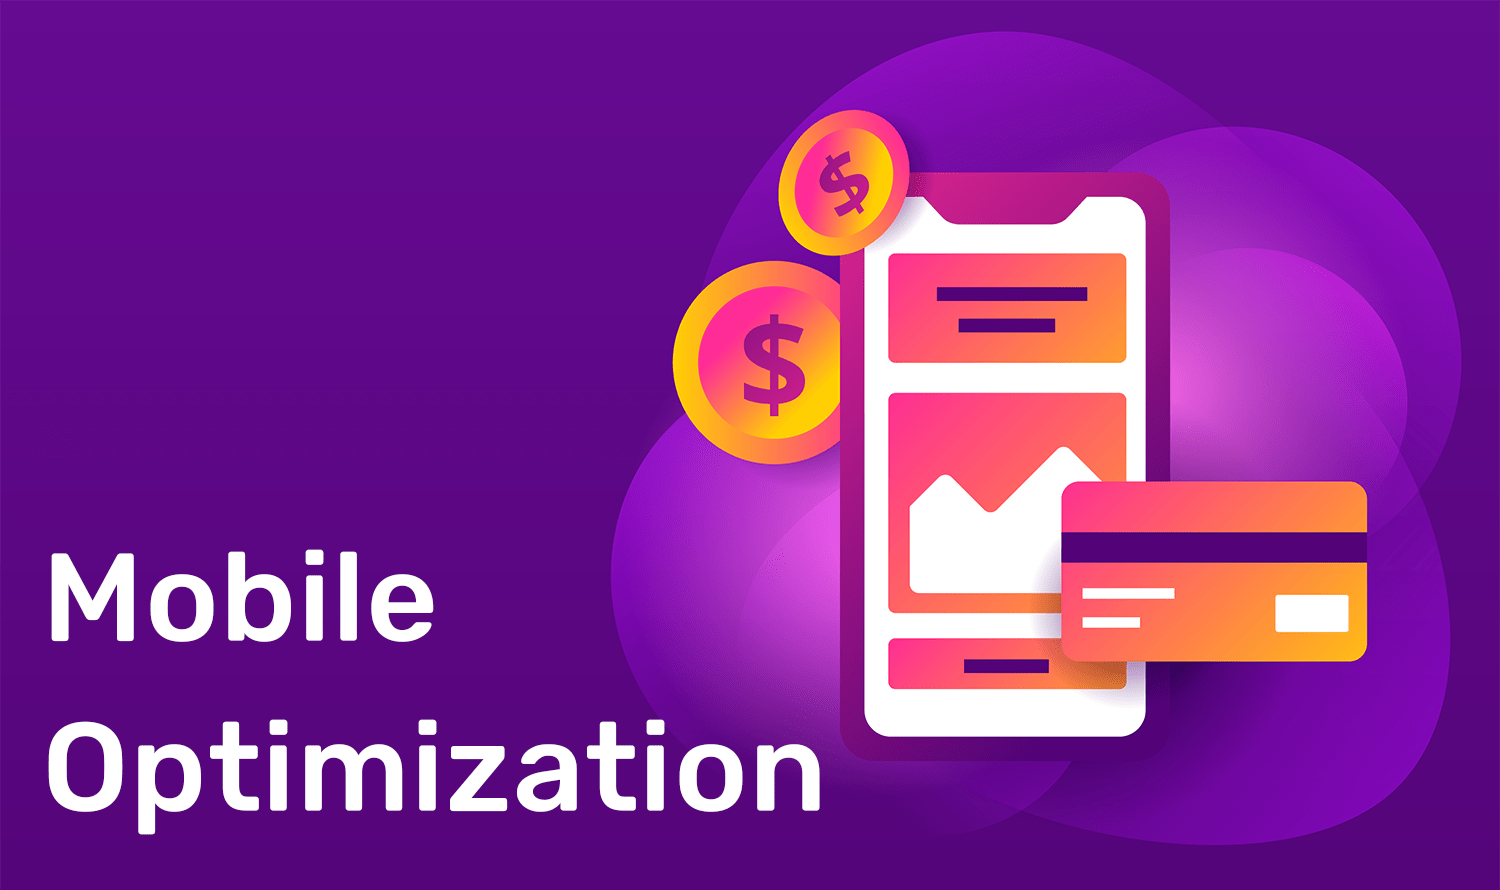 Mobile optimization: How should a website look on mobile